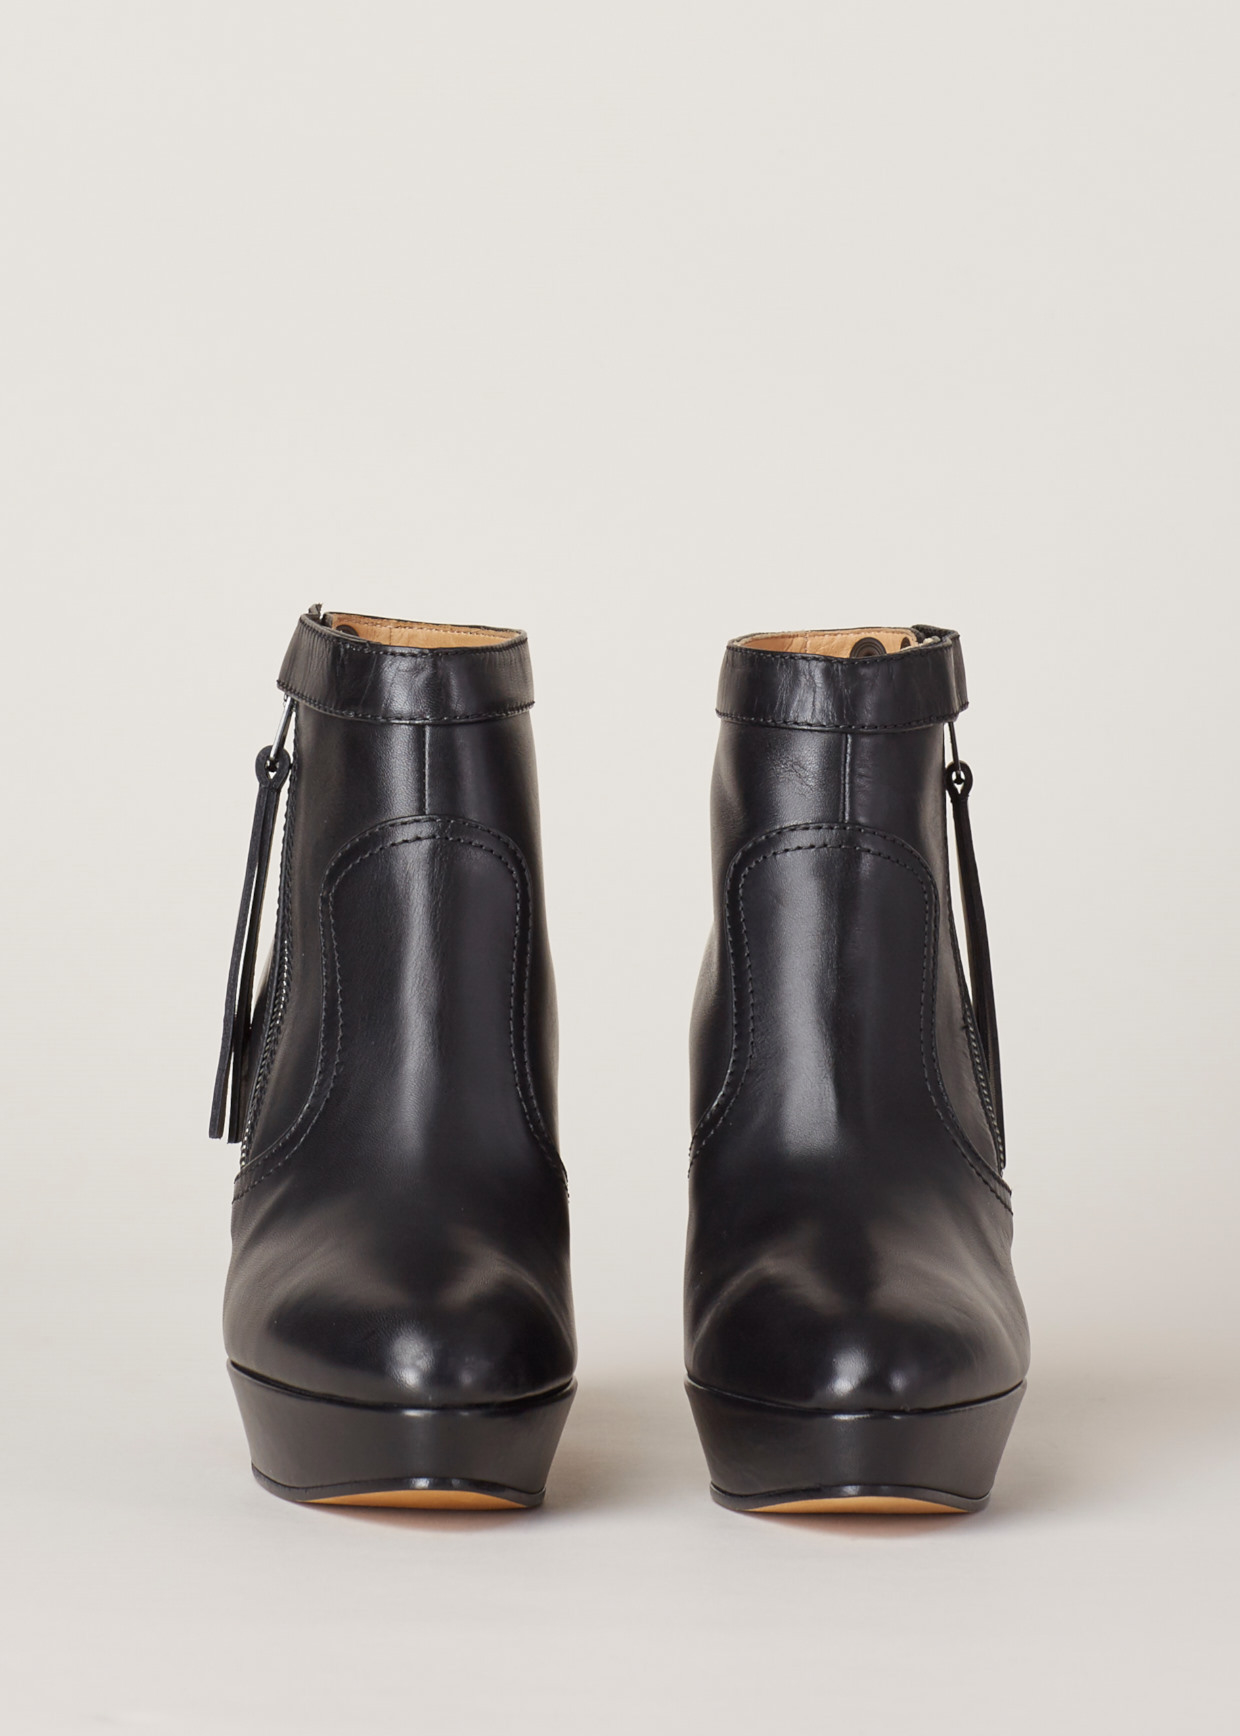 a45cb533ac8 Acne Studios Track Leather Ankle Boots in Black - Lyst